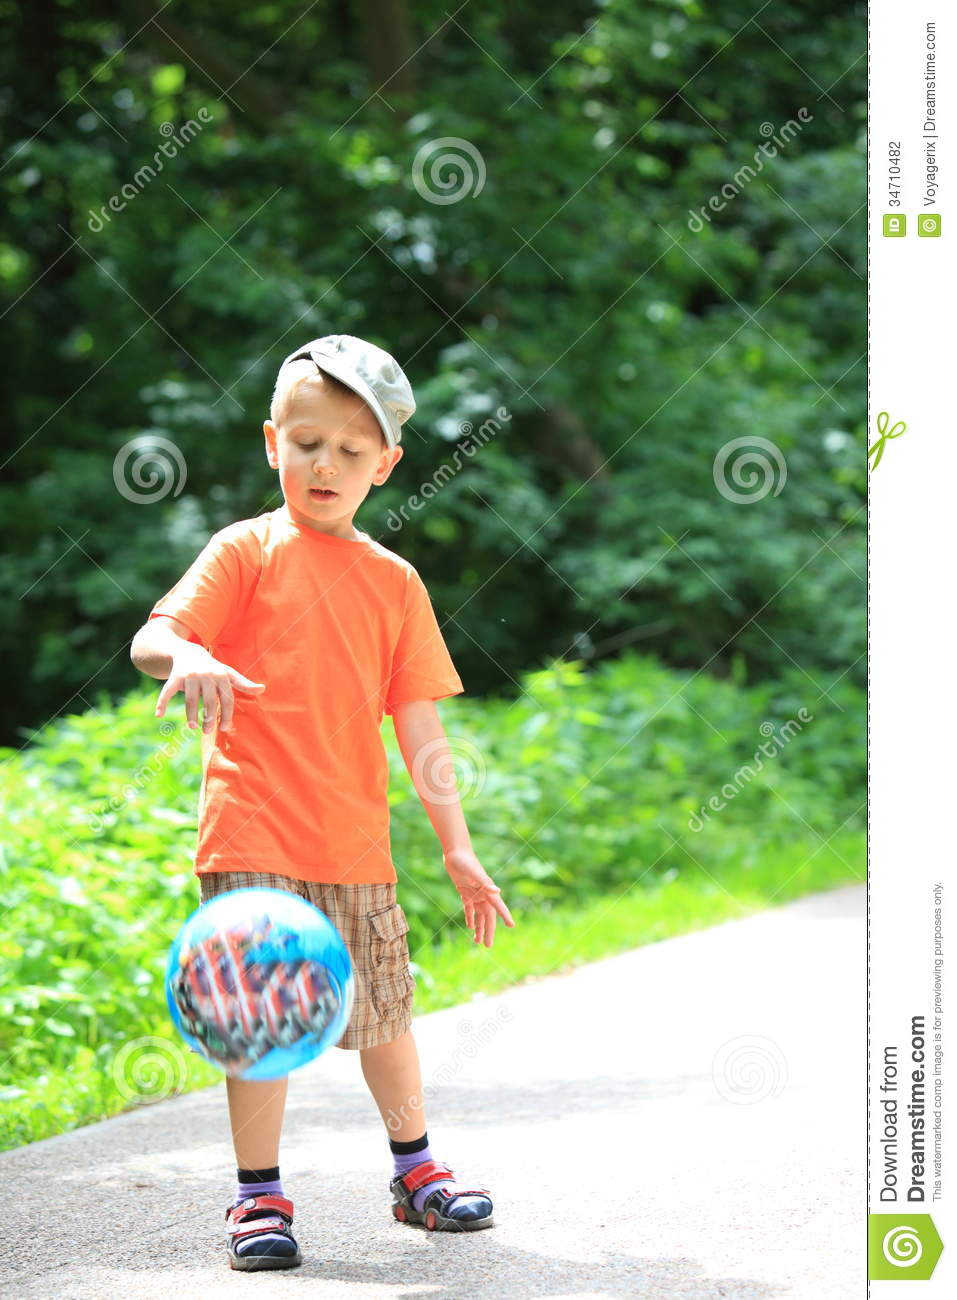 Play With Patterns Prints And Lots Of Accessories For: Boy Playing With Ball In Park Outdoors Stock Photography